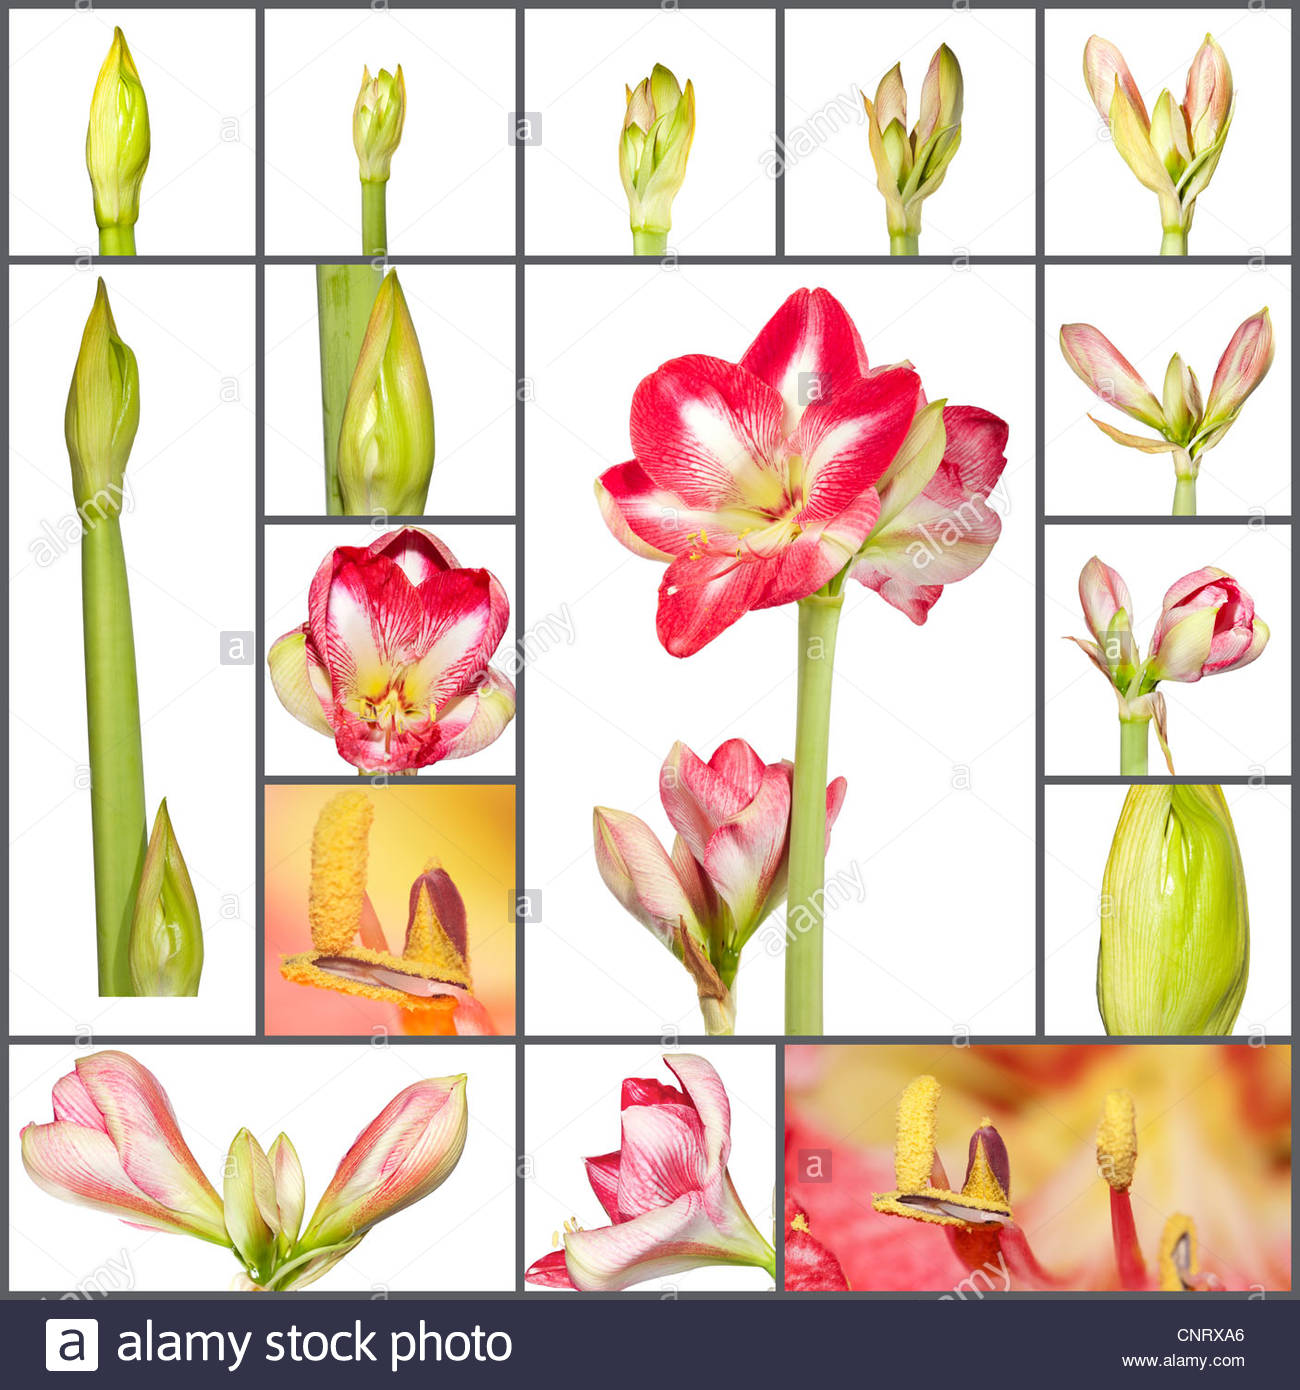 Collage Of An Amaryllis Plant Growth Phases On White Background.